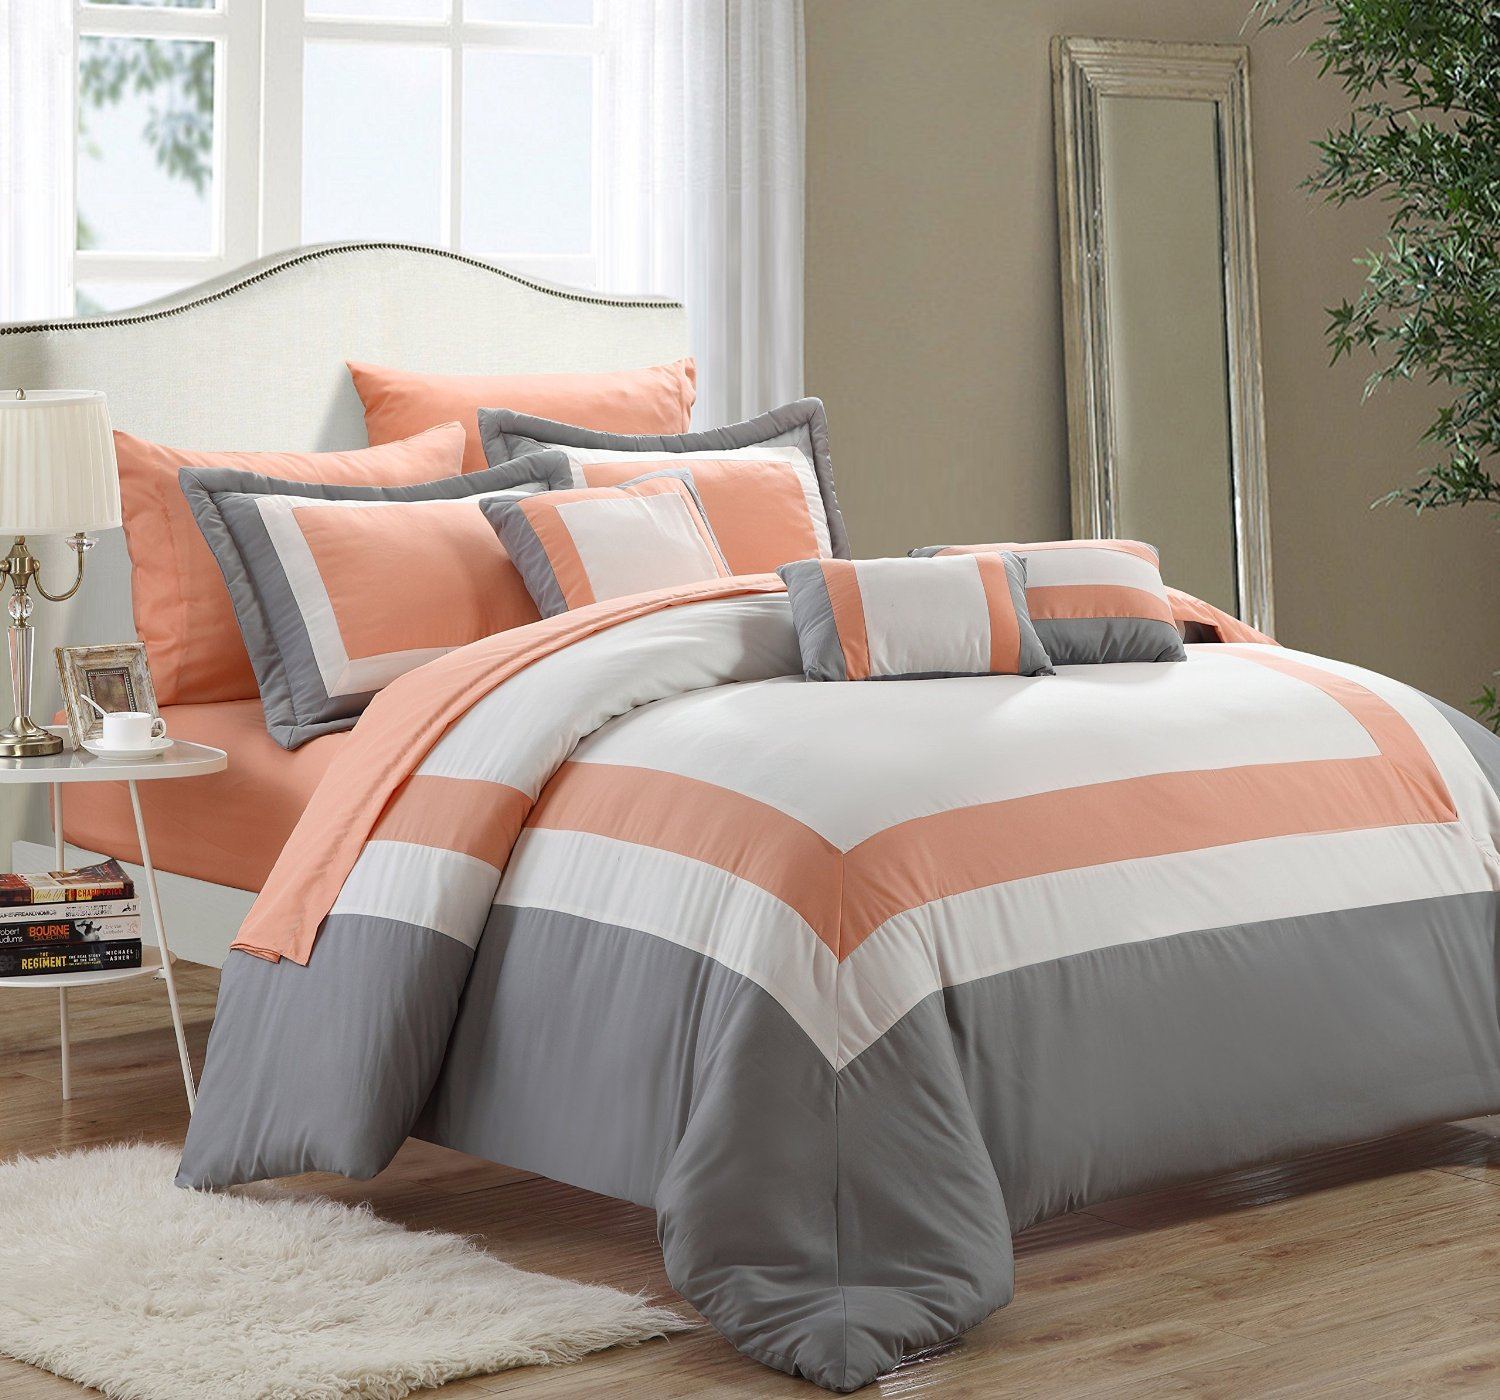 with ding to fuzzy set ruffled elegant hot pink girls comforter white your bed twin sheets black and